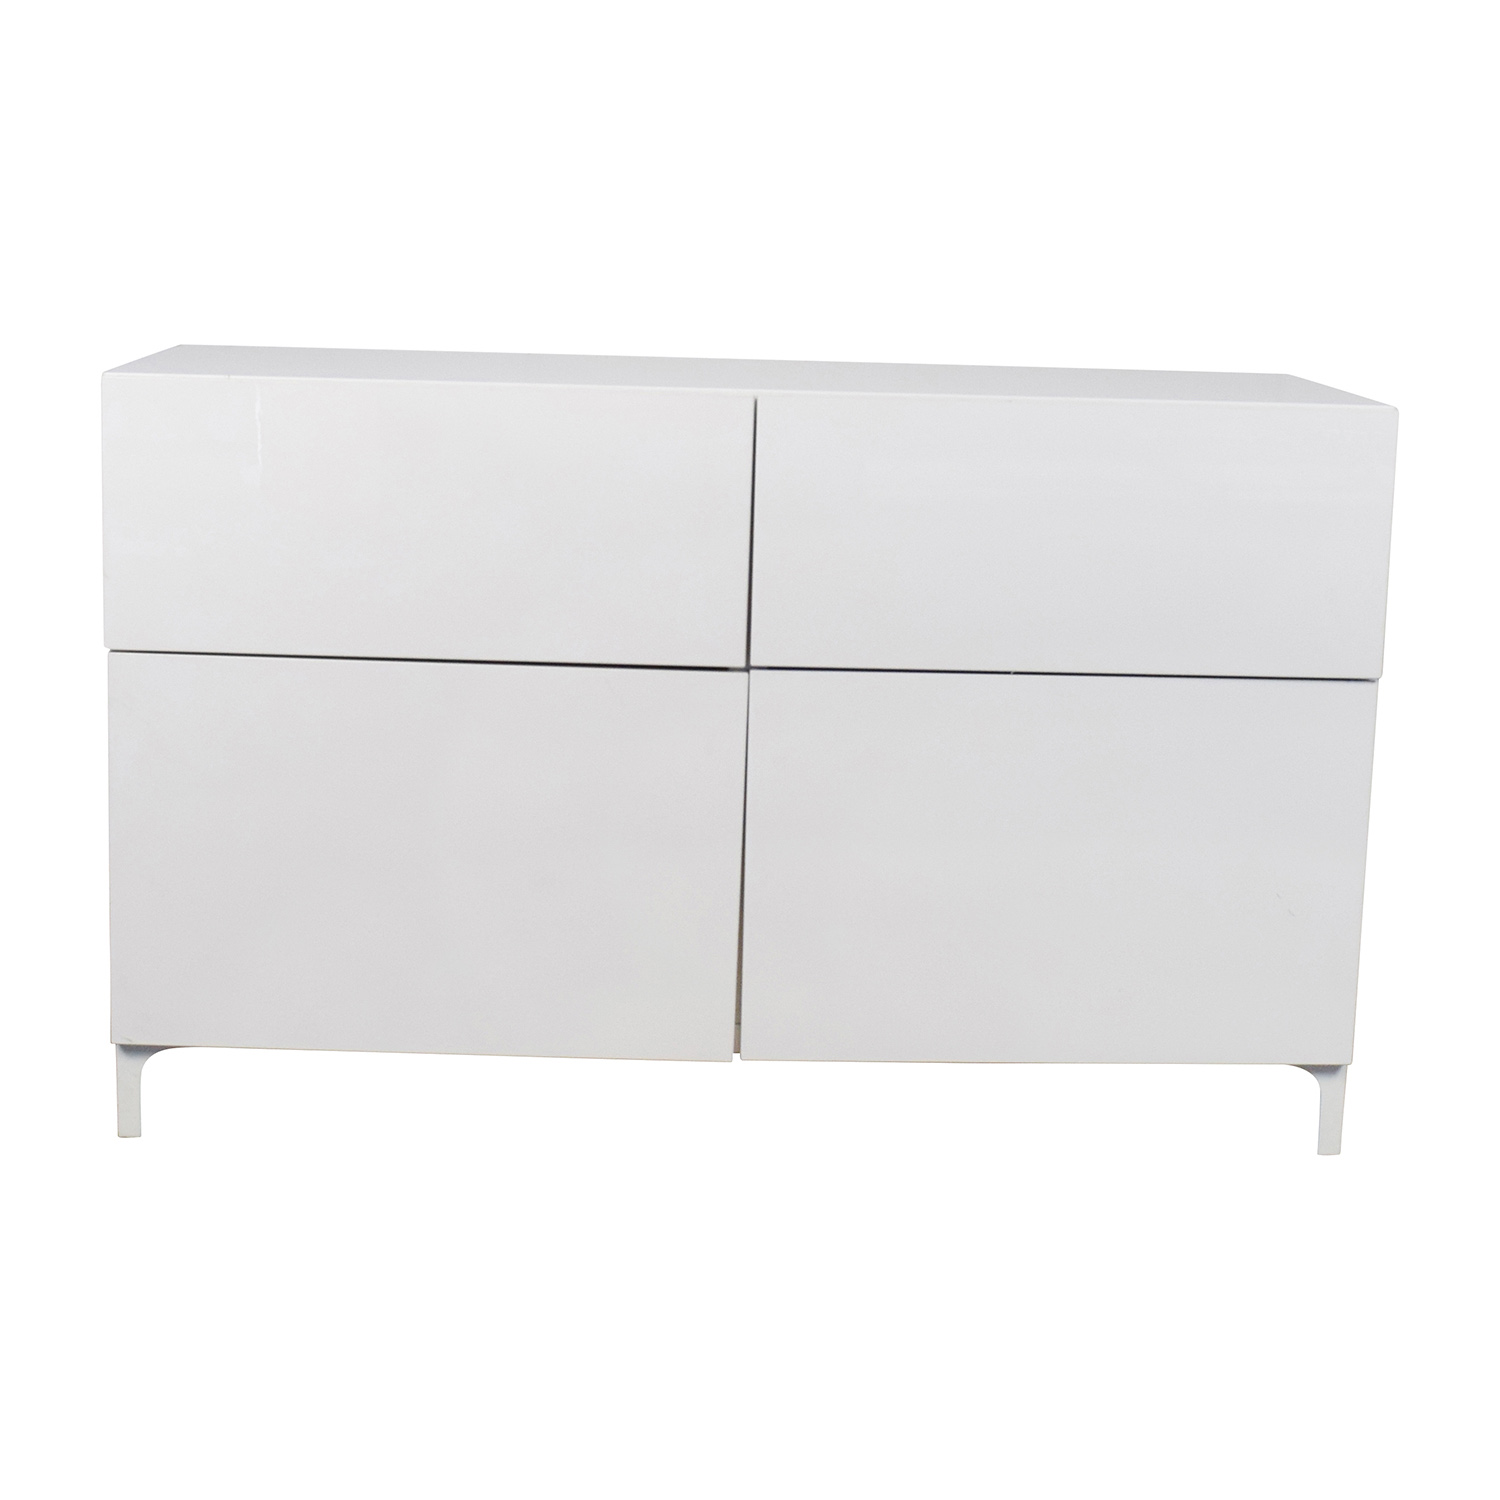 65 off ikea ikea besta white cabinet storage. Black Bedroom Furniture Sets. Home Design Ideas